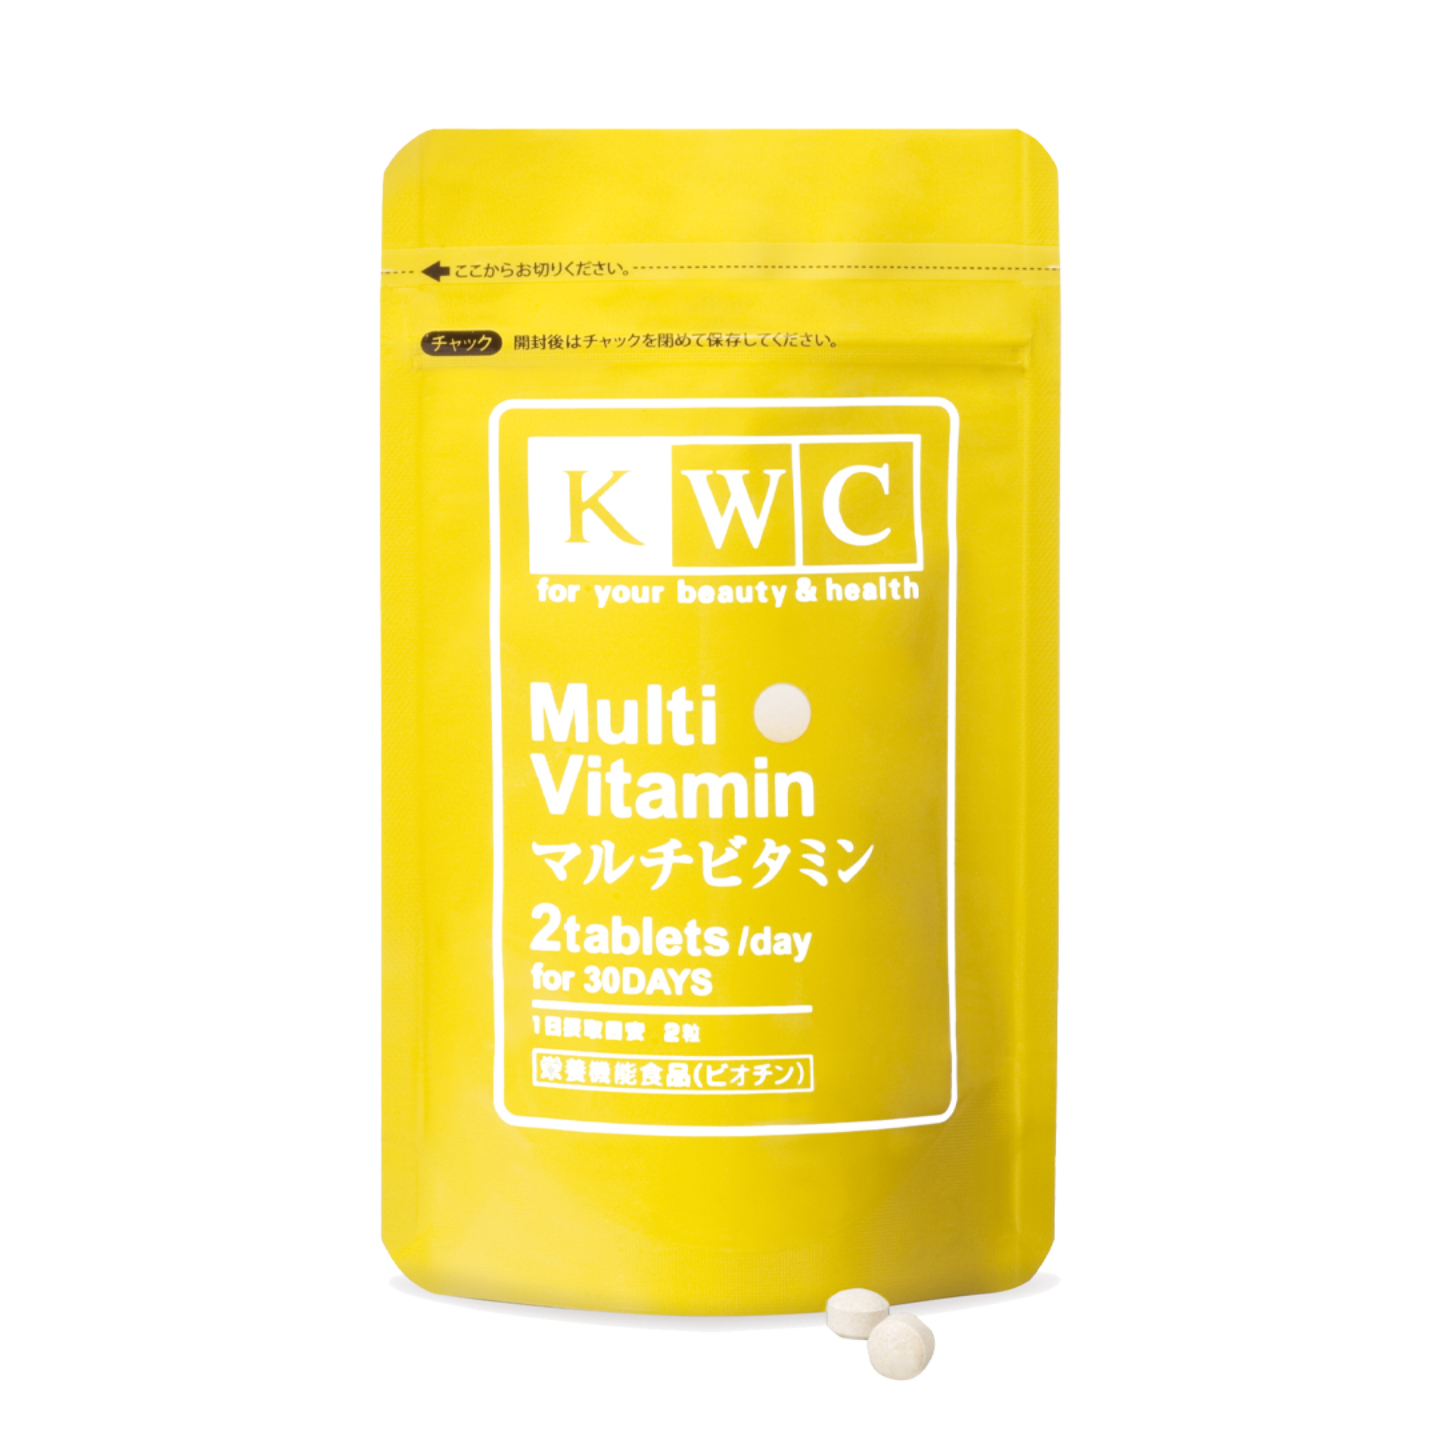 KWC Multi-Vitamin - 60 tablets